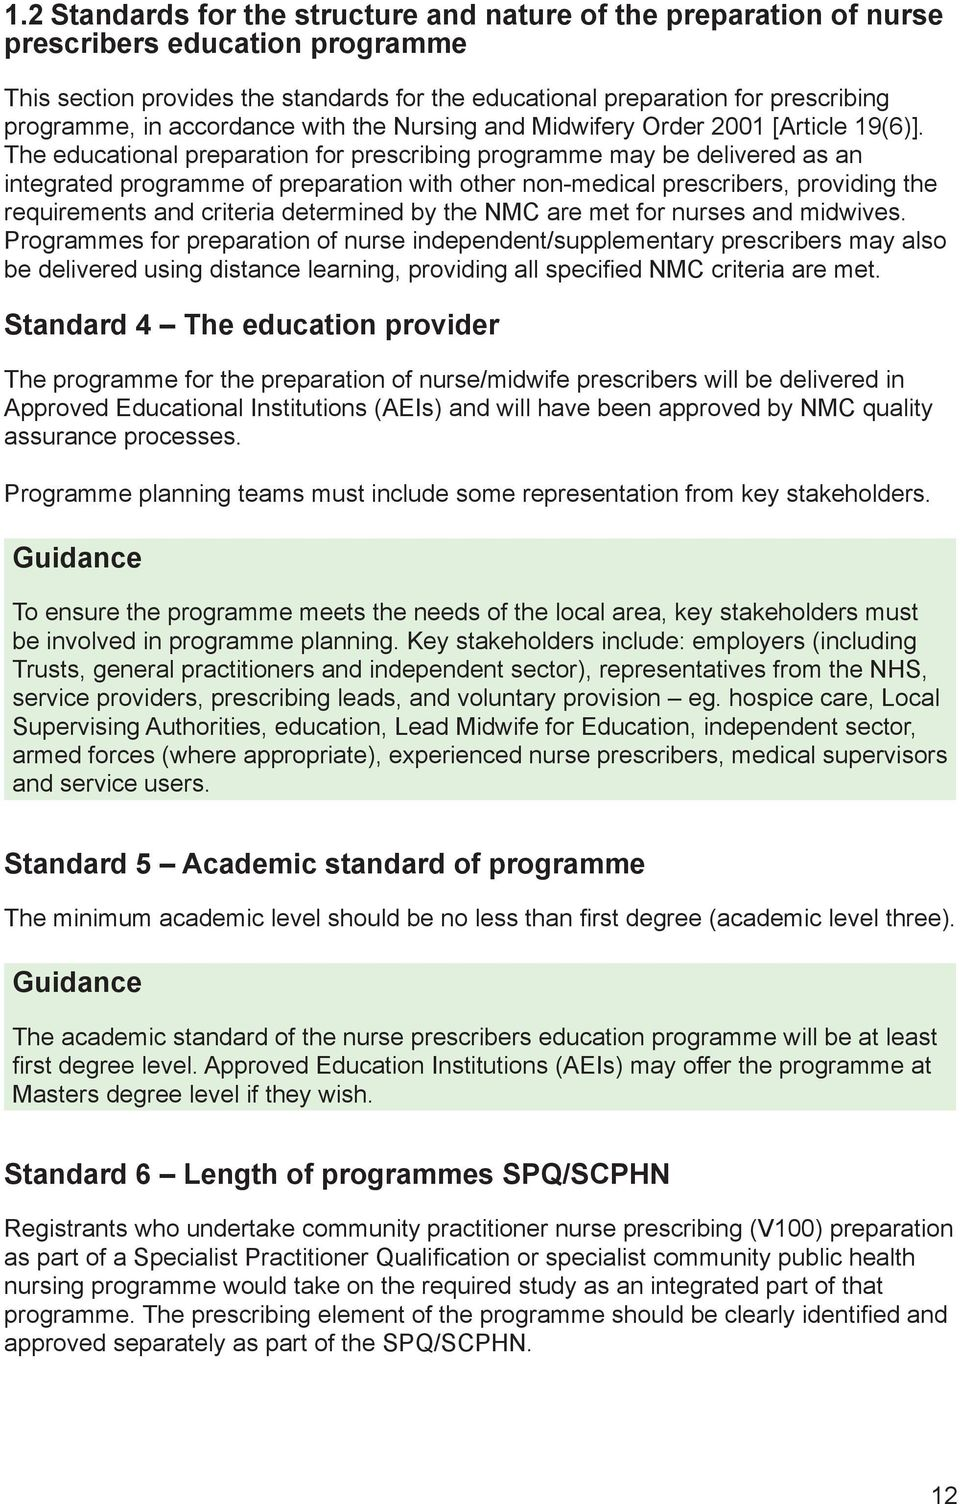 The educational preparation for prescribing programme may be delivered as an integrated programme of preparation with other non-medical prescribers, providing the requirements and criteria determined